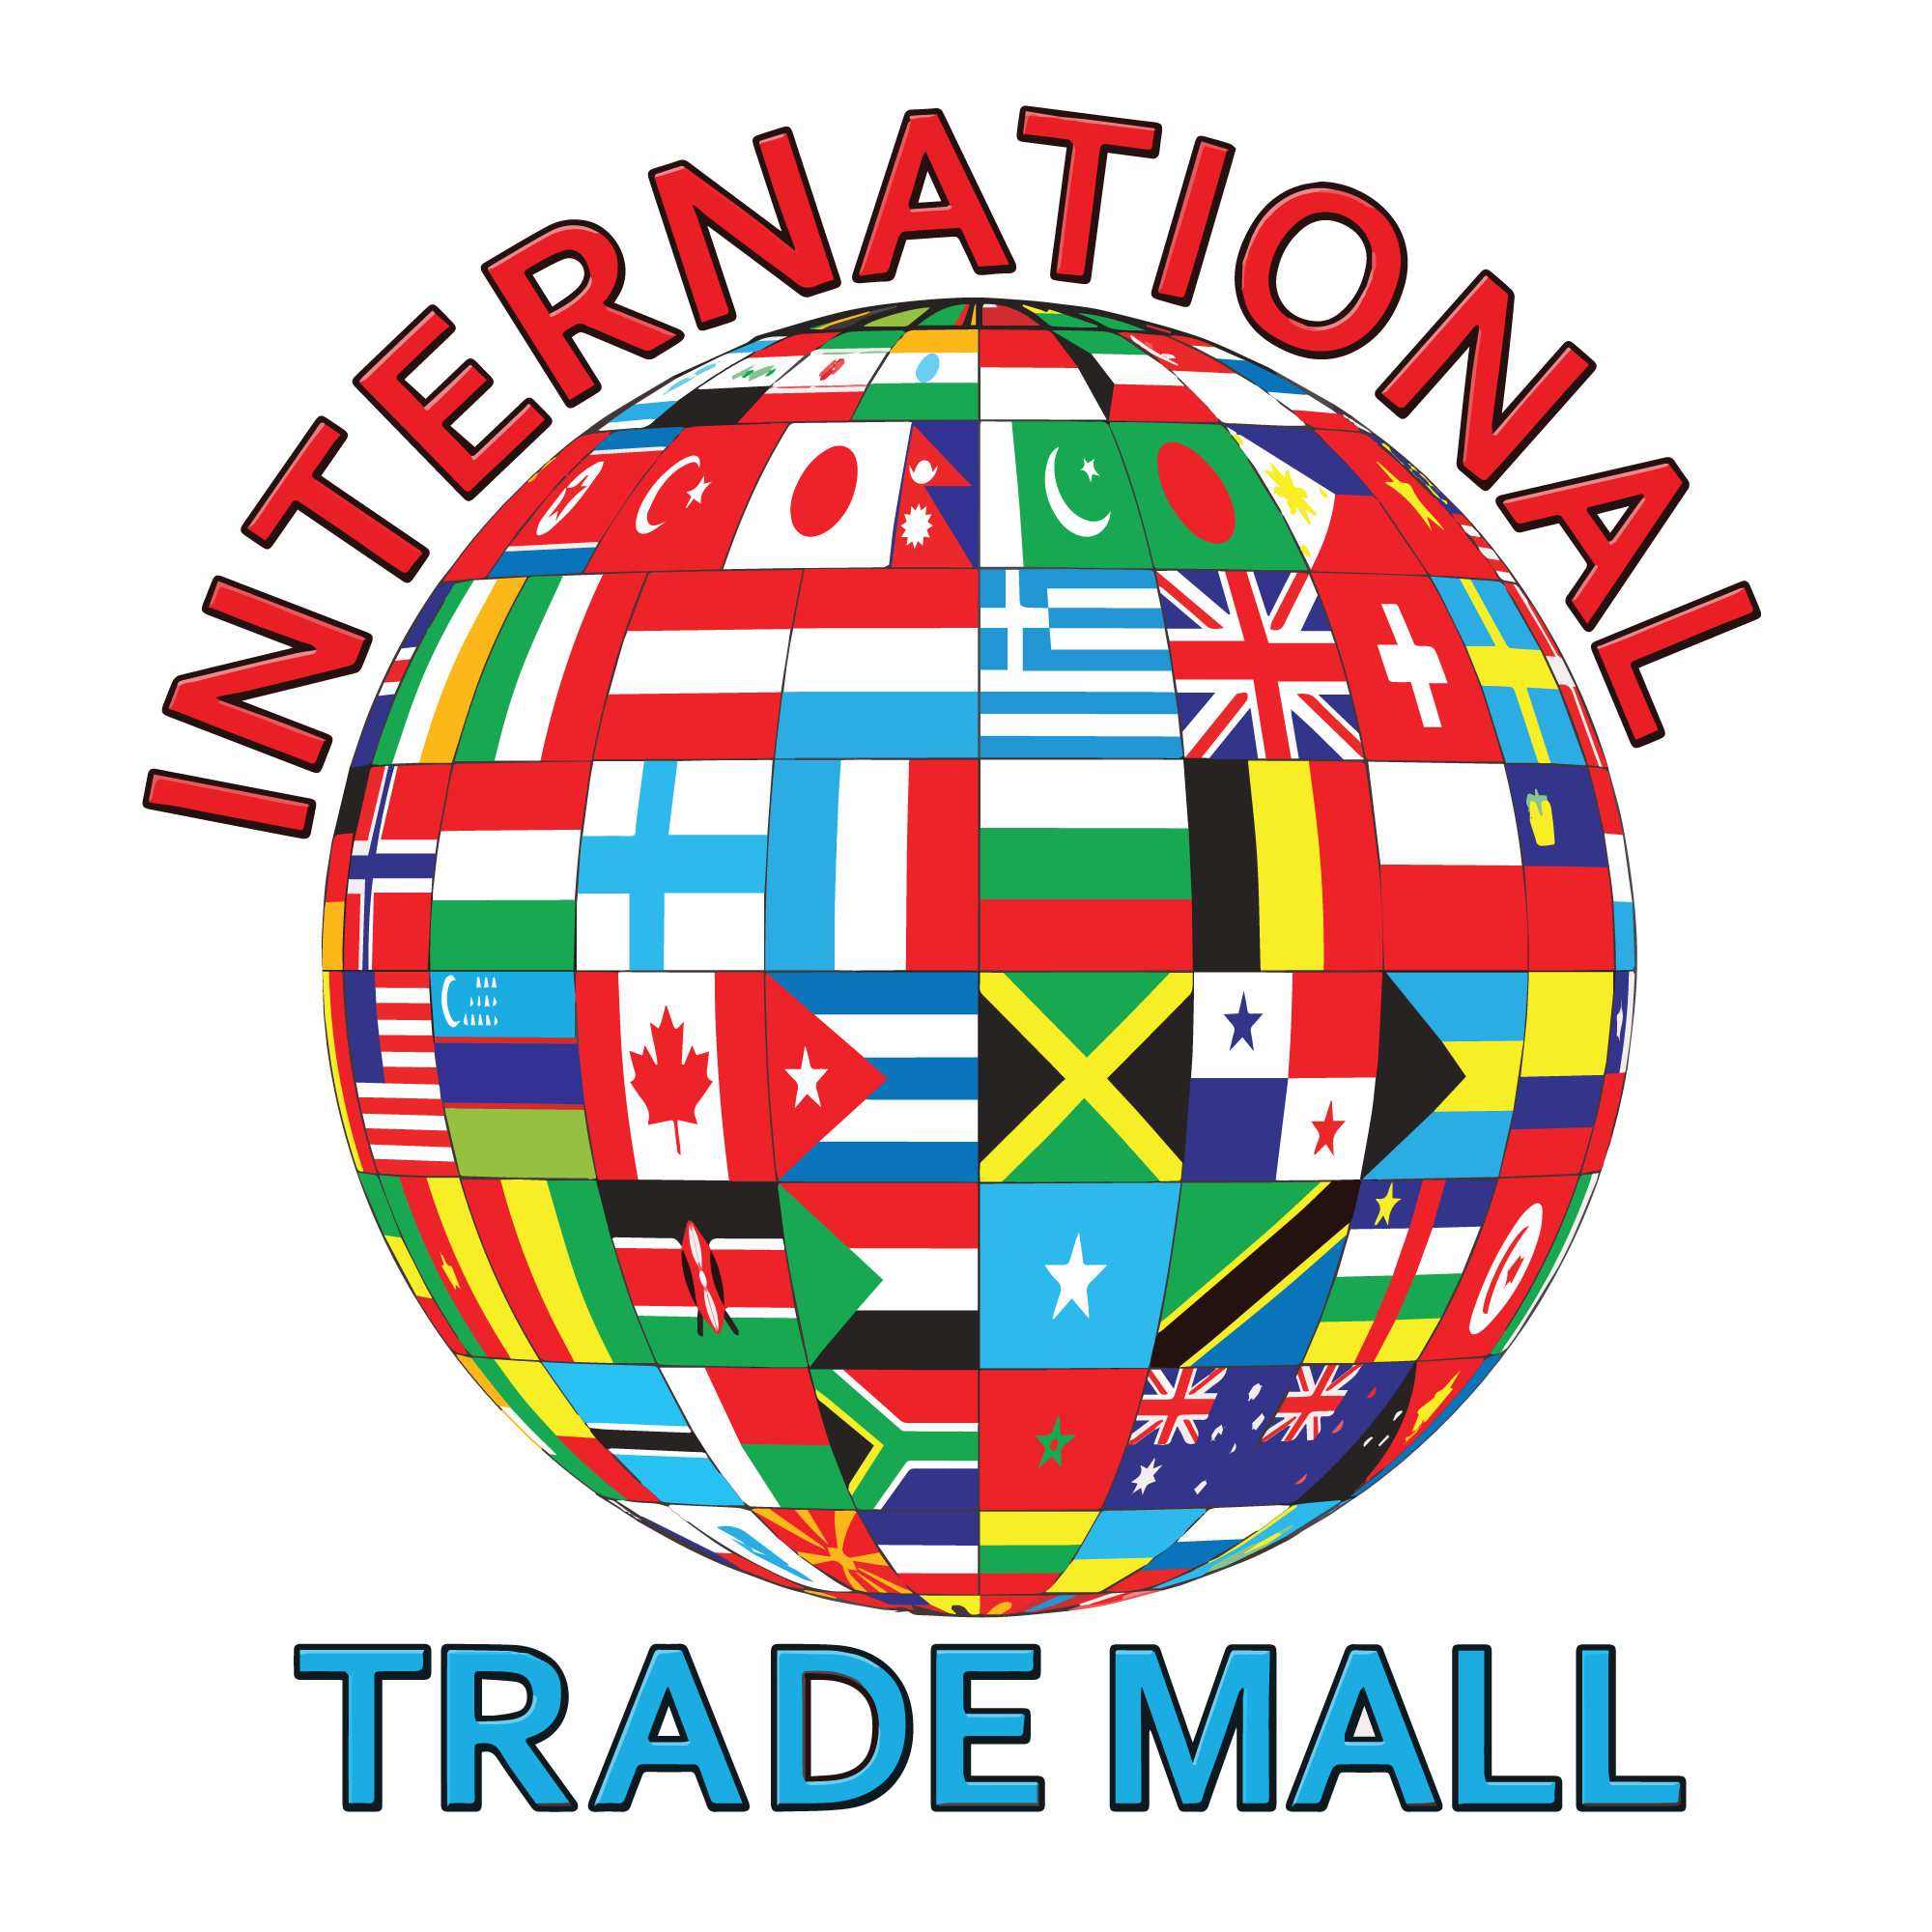 International Trade Mall